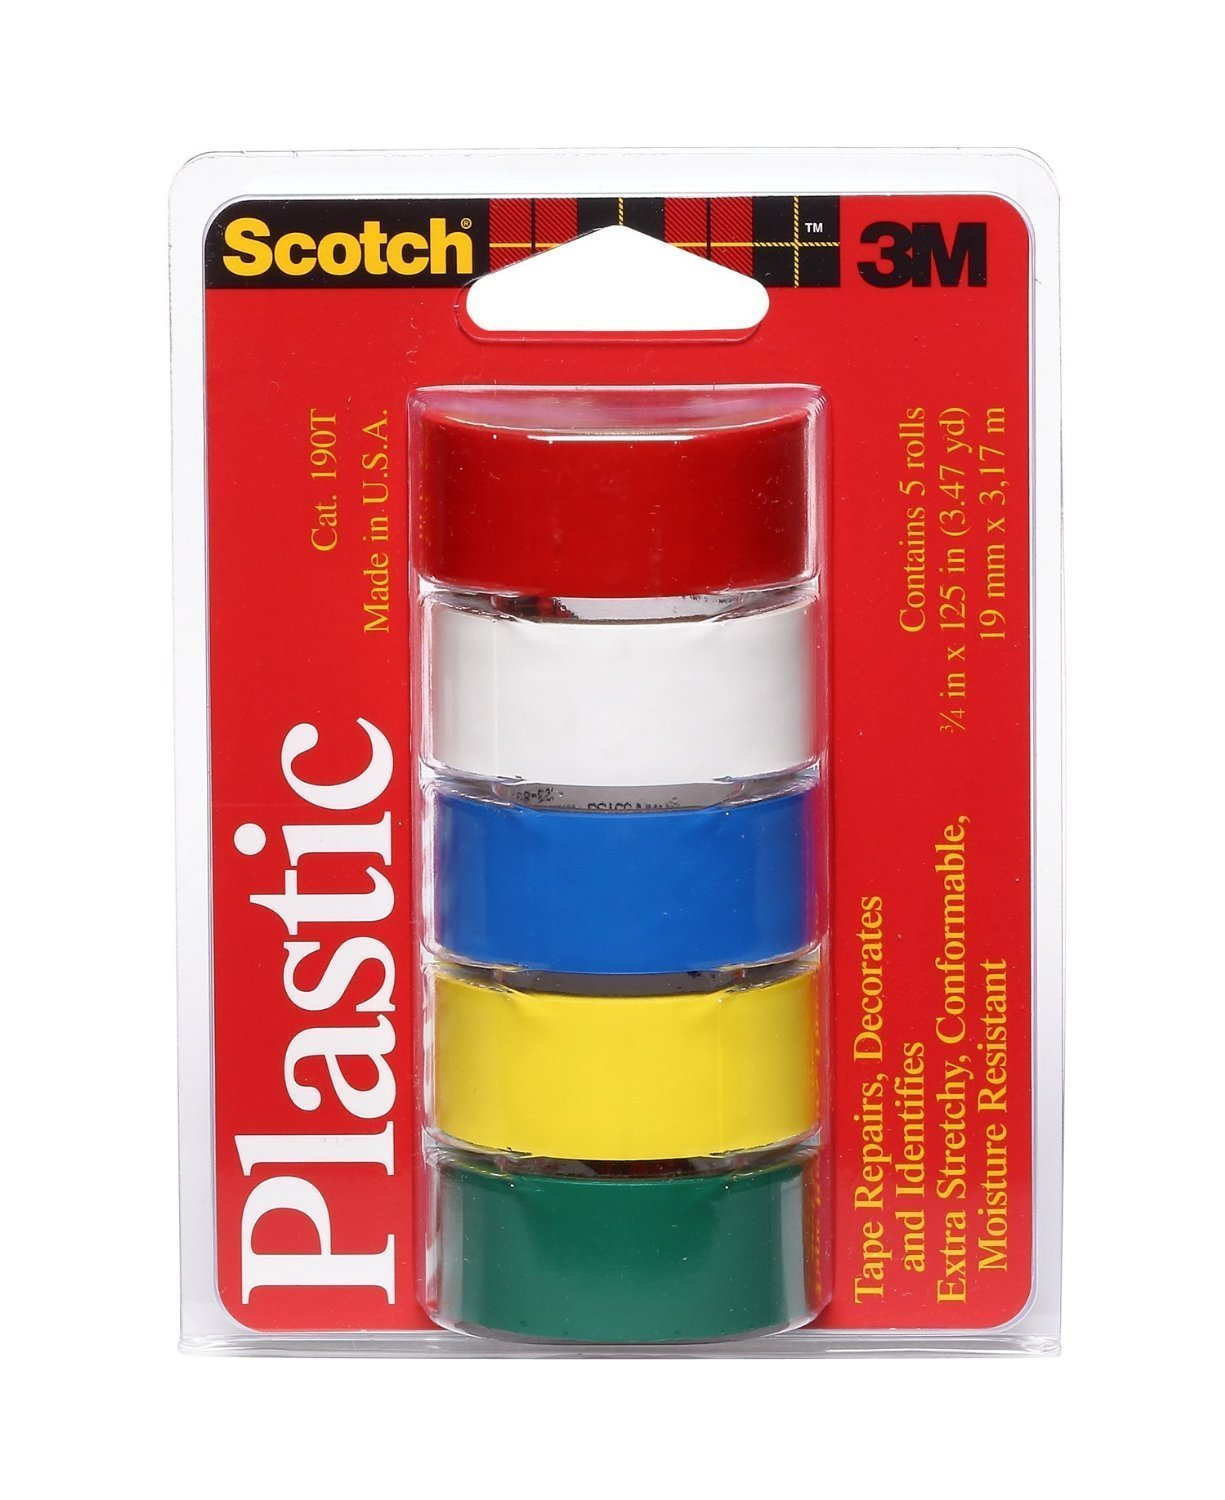 Scotch Super Thin Waterproof Vinyl Plastic Colored Tape Each 5-Pack , .75-Inch by 125-Inch,(Pack of 2)